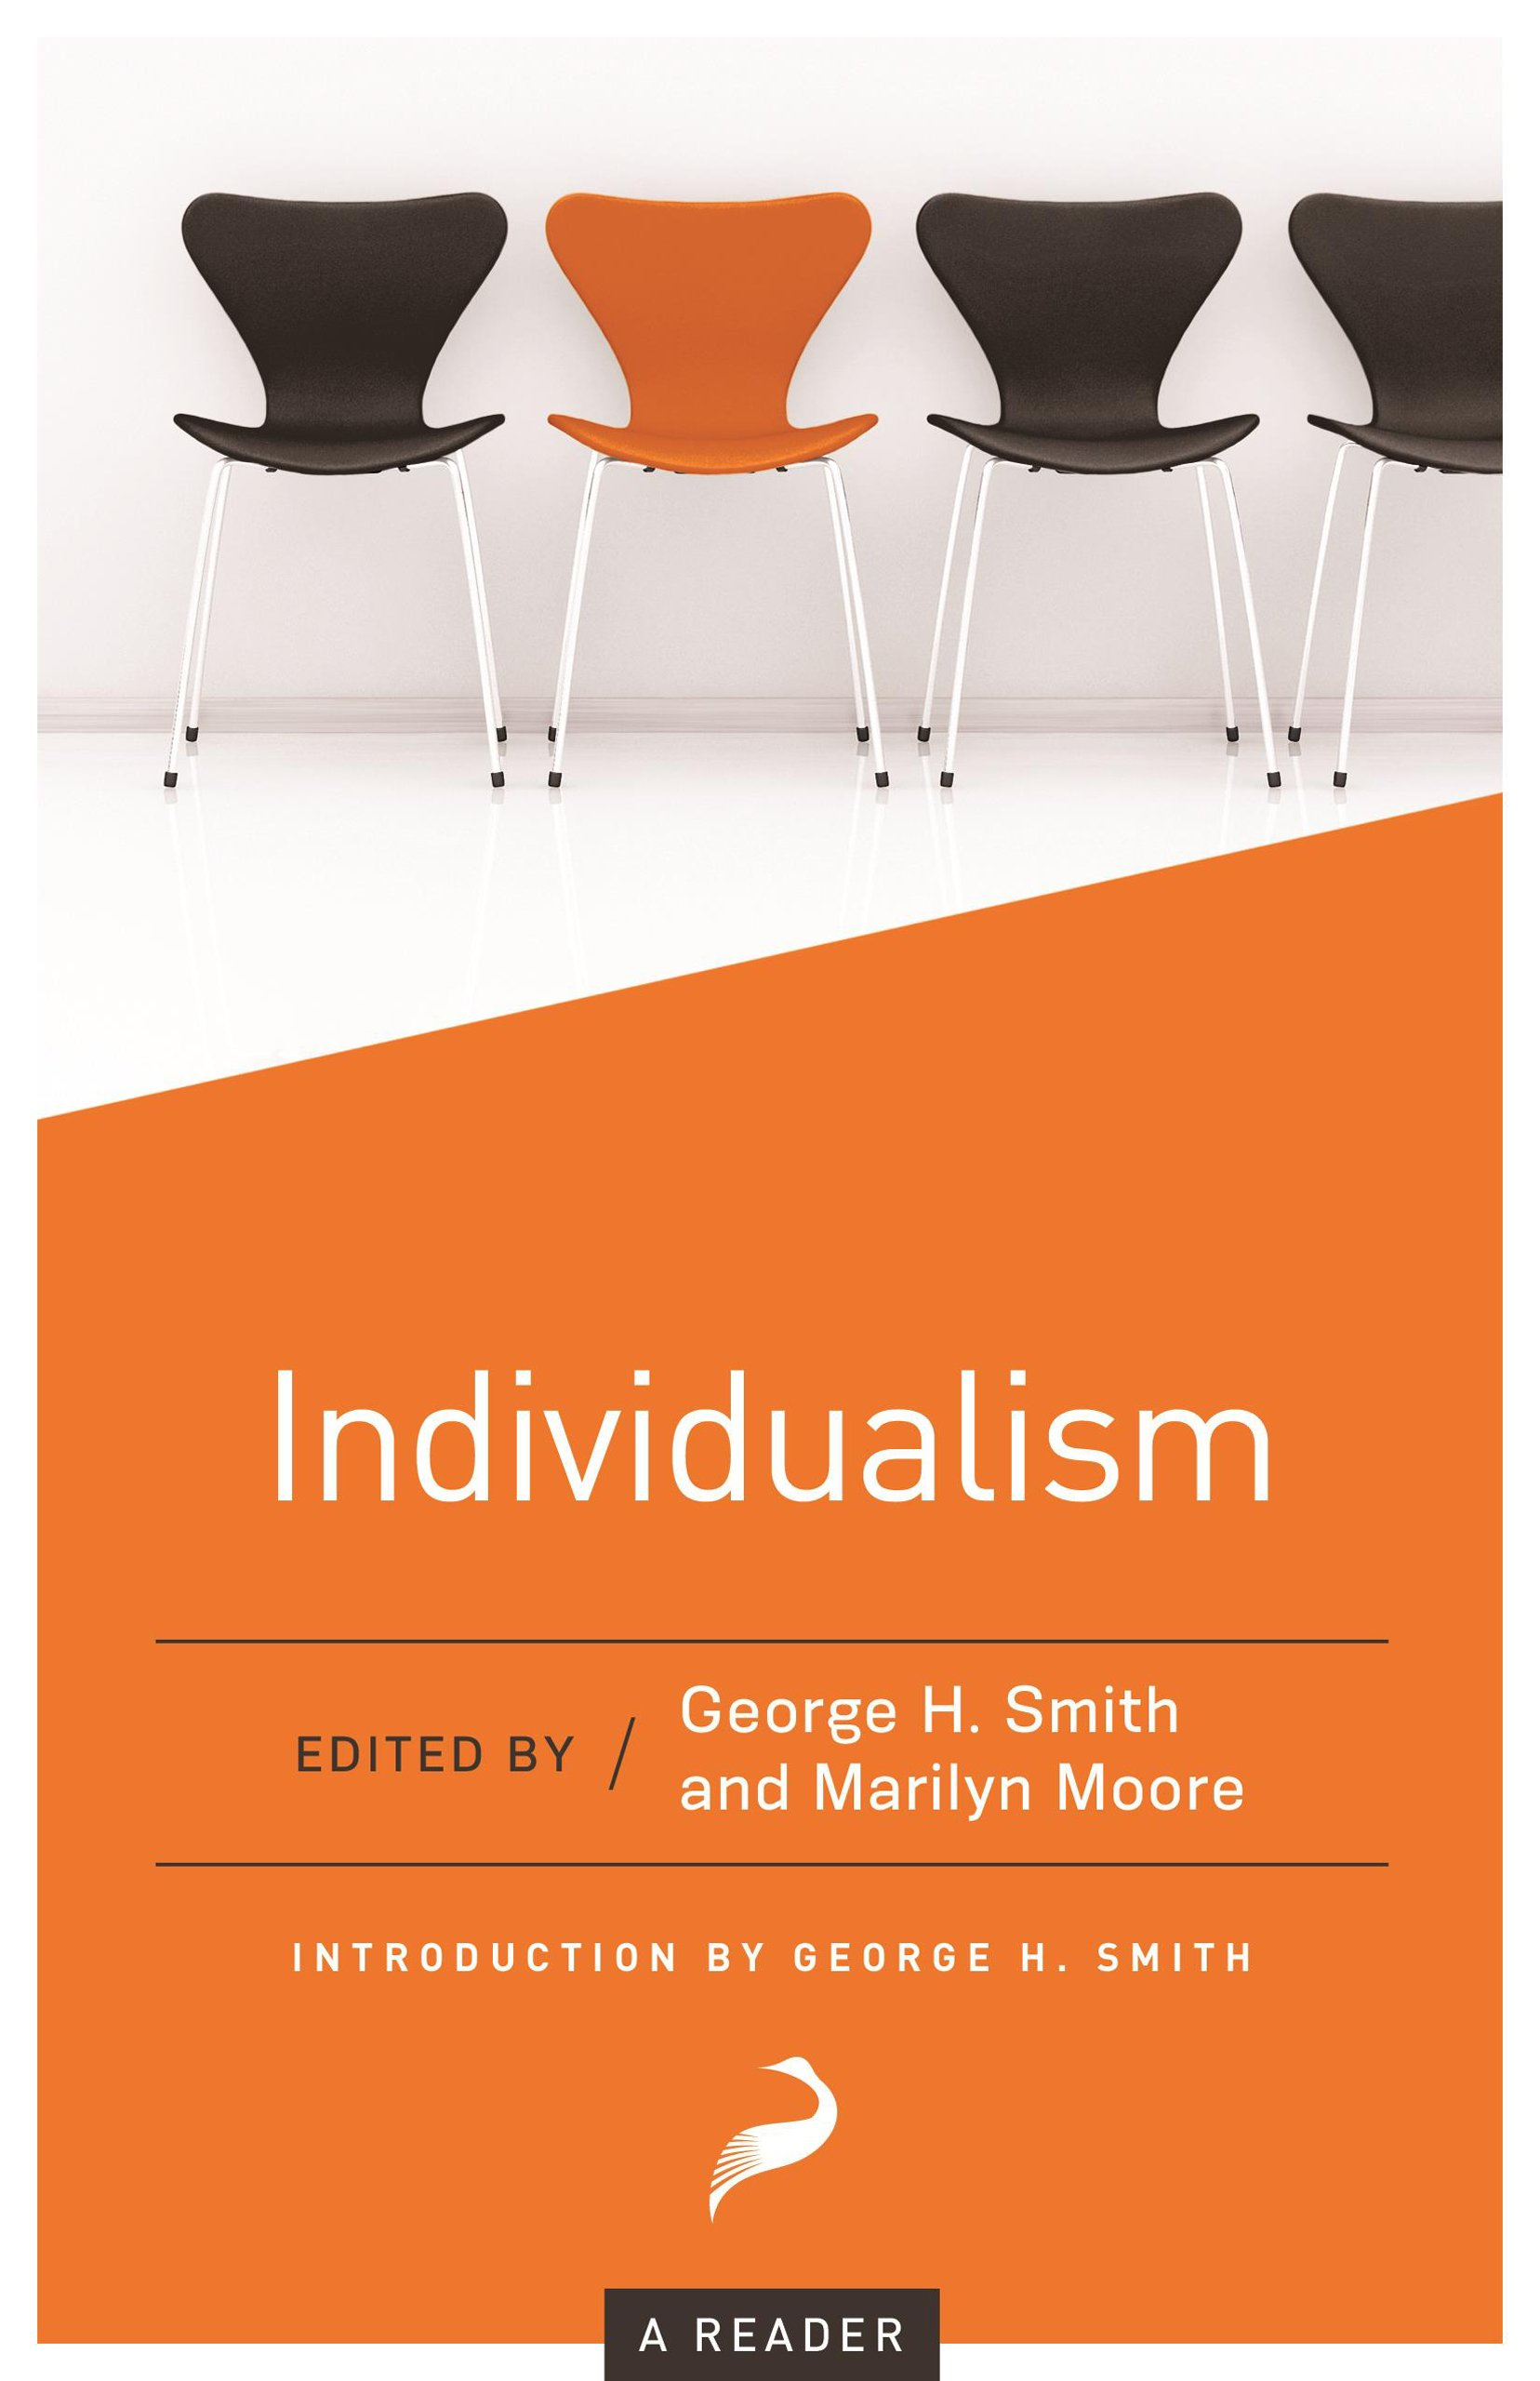 com individualism a reader george h com individualism a reader 9781939709639 george h smith marilyn moore aaron ross powell books